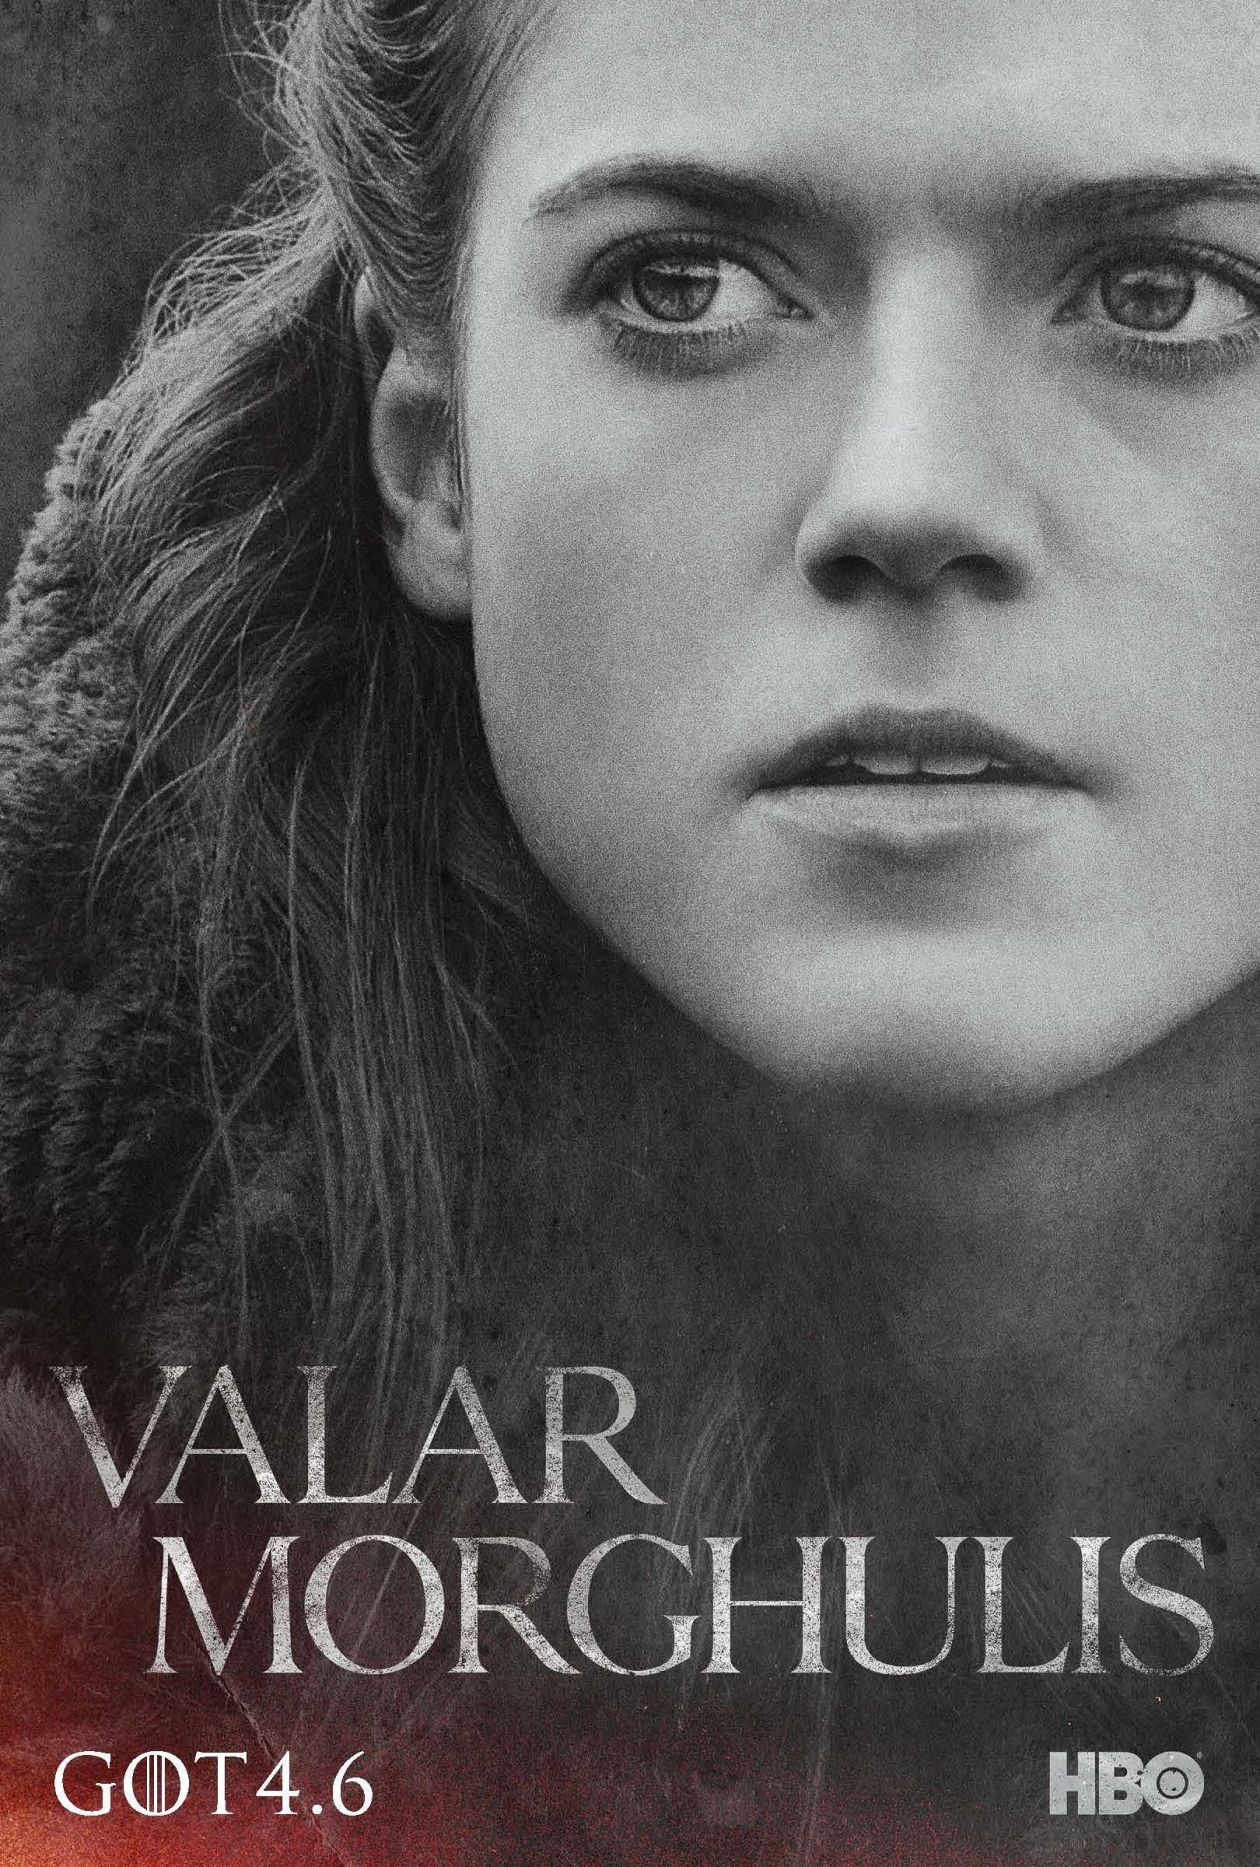 Rose Leslie actress / Game of Thrones / Ygritte / 2014 Season 4 Series Poster Affiche Série